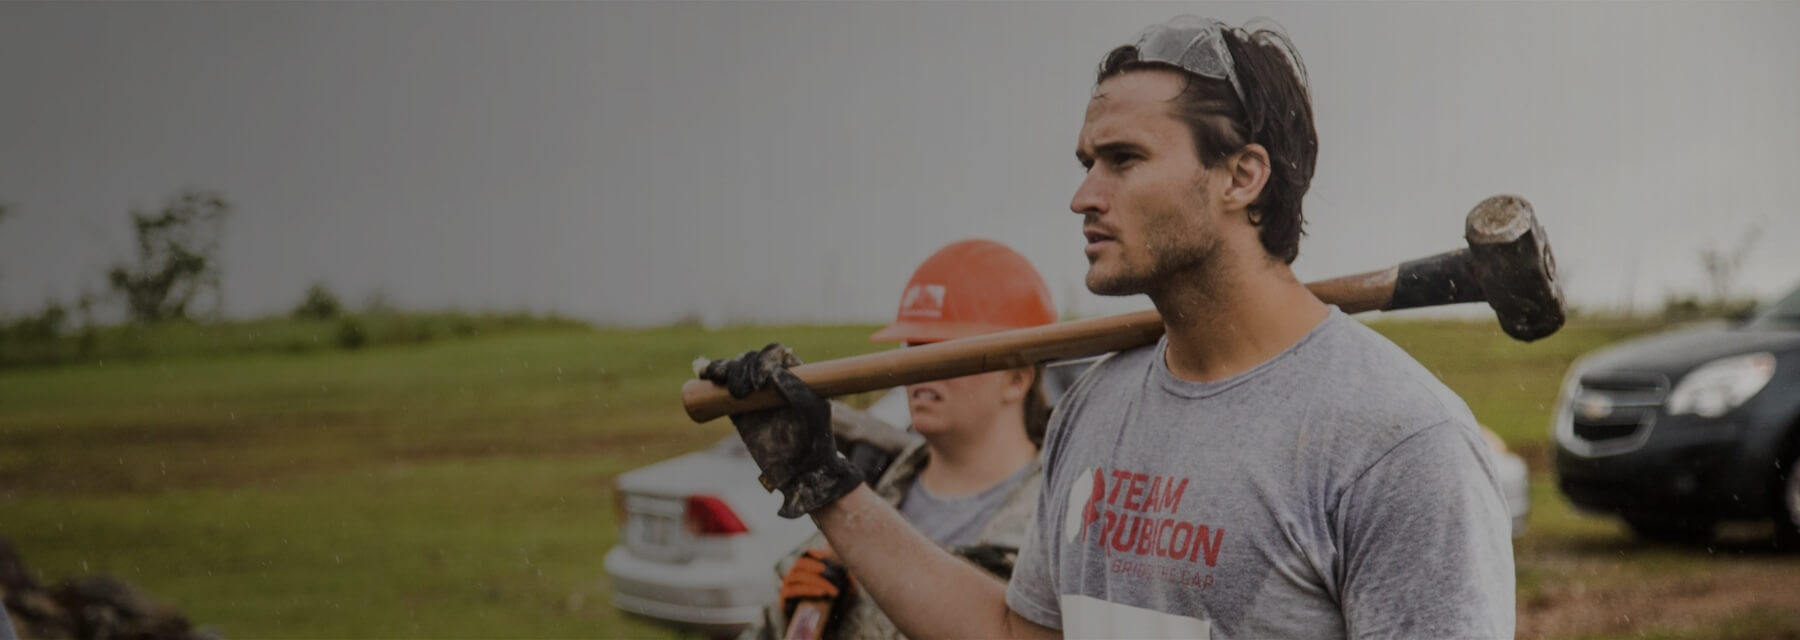 Jake Wood, Marine and Team Rubicon co-founder, clears debris following an outbreak of deadly tornadoes in Oklahoma.